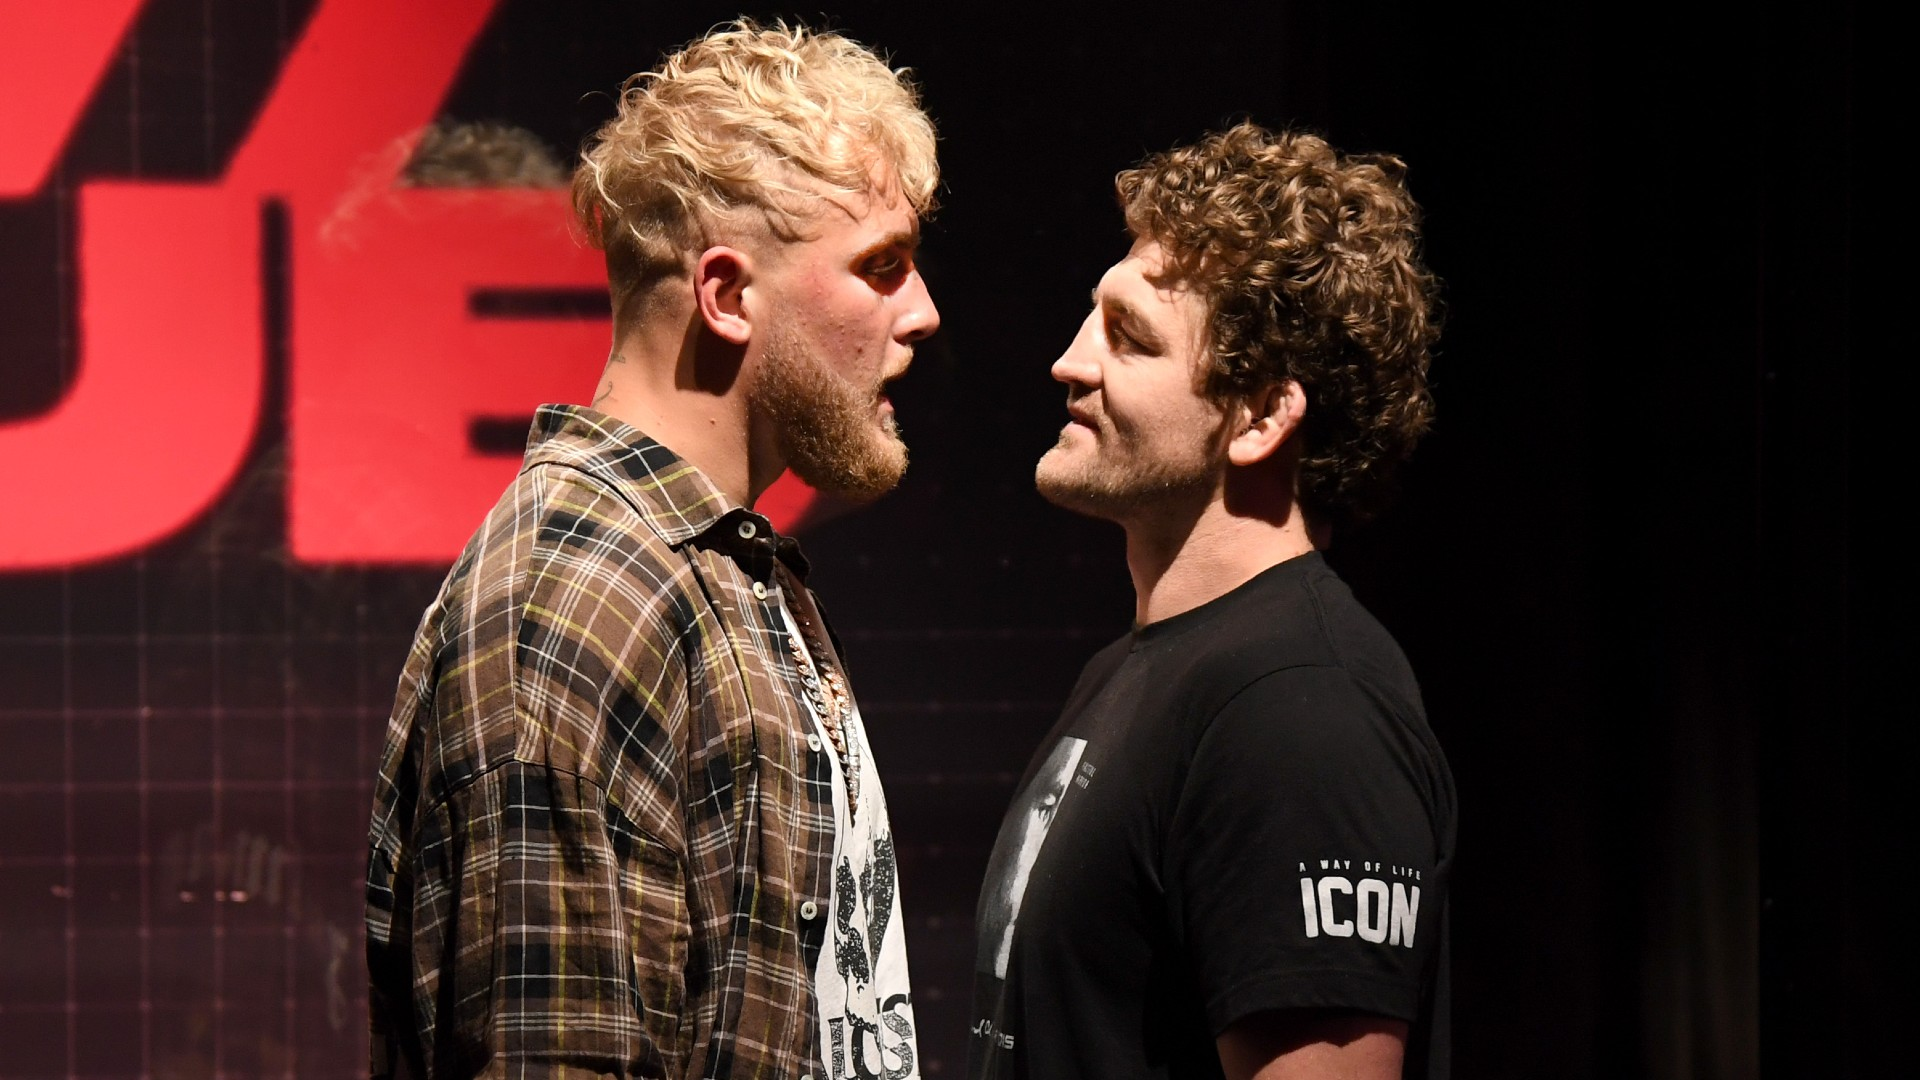 Jake Paul vs. Ben Askren live fight updates, results, highlights from 2021 boxing match